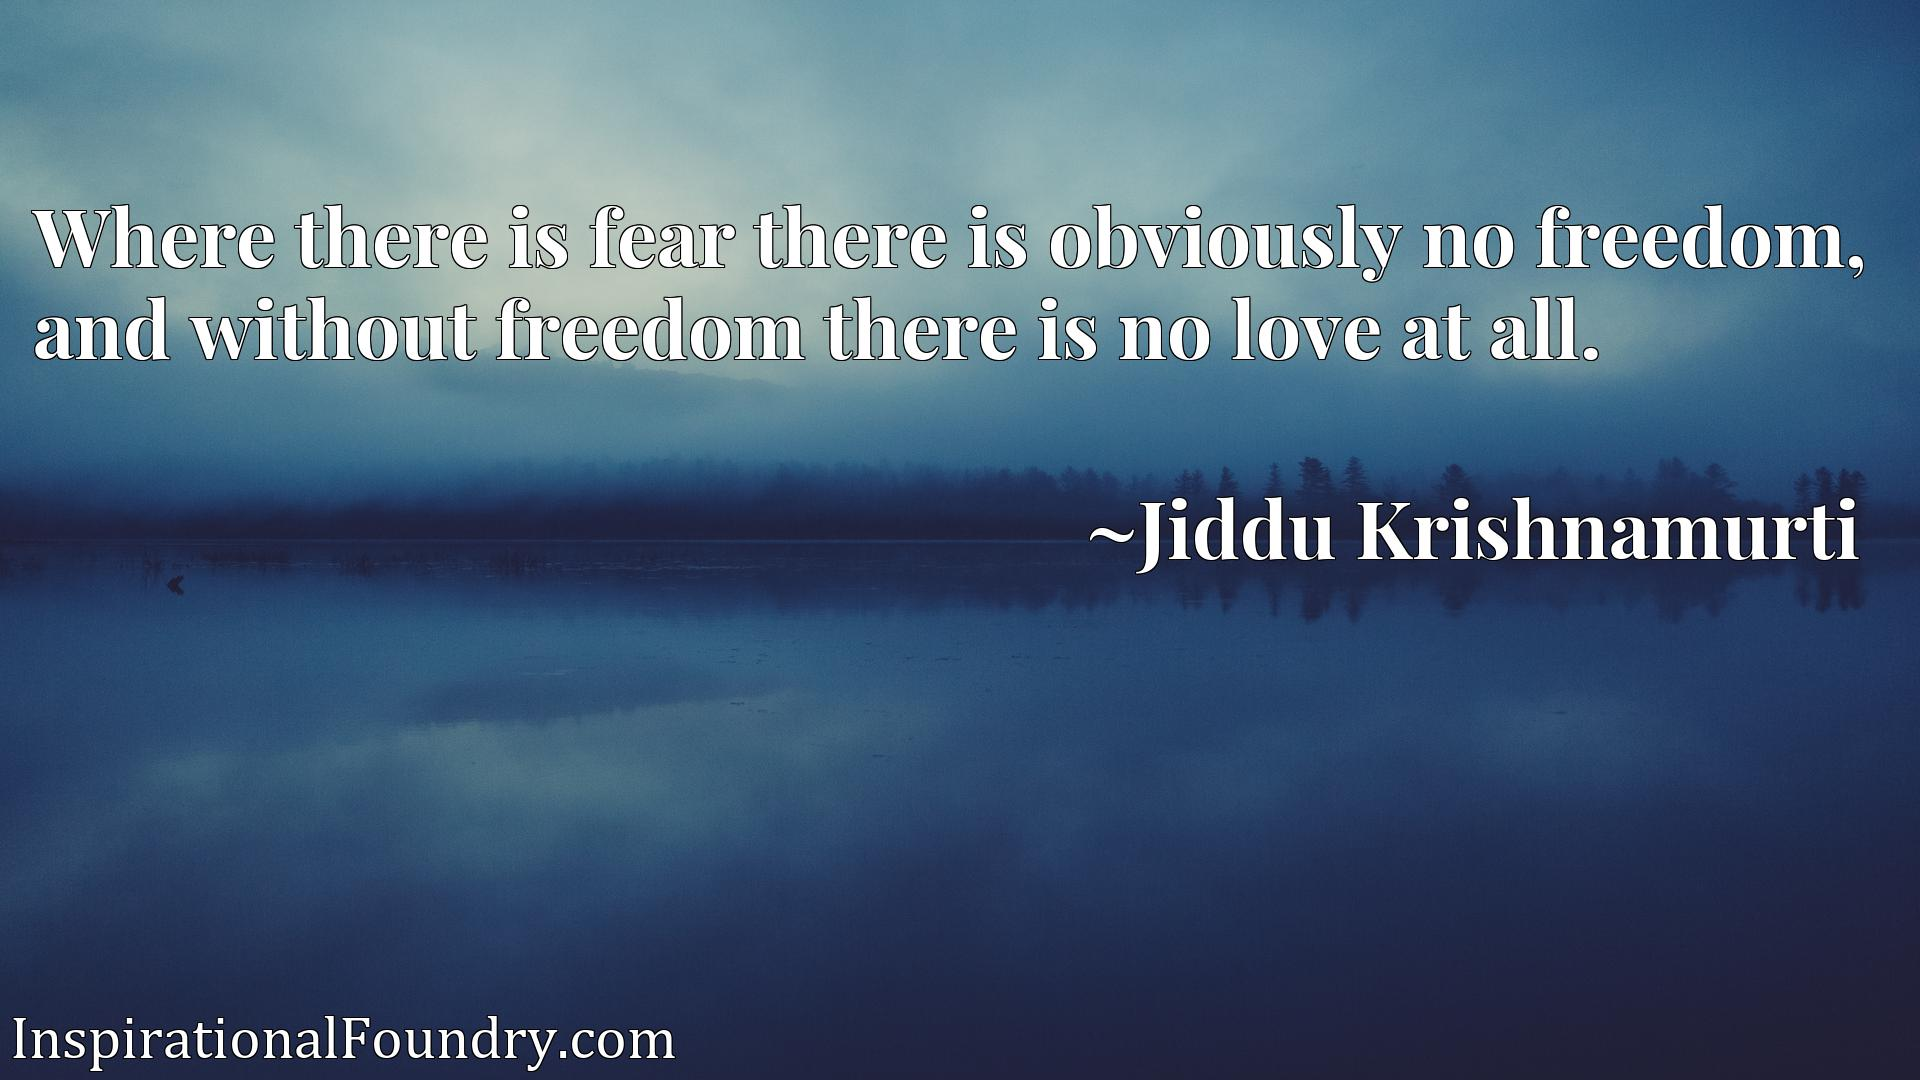 Where there is fear there is obviously no freedom, and without freedom there is no love at all.